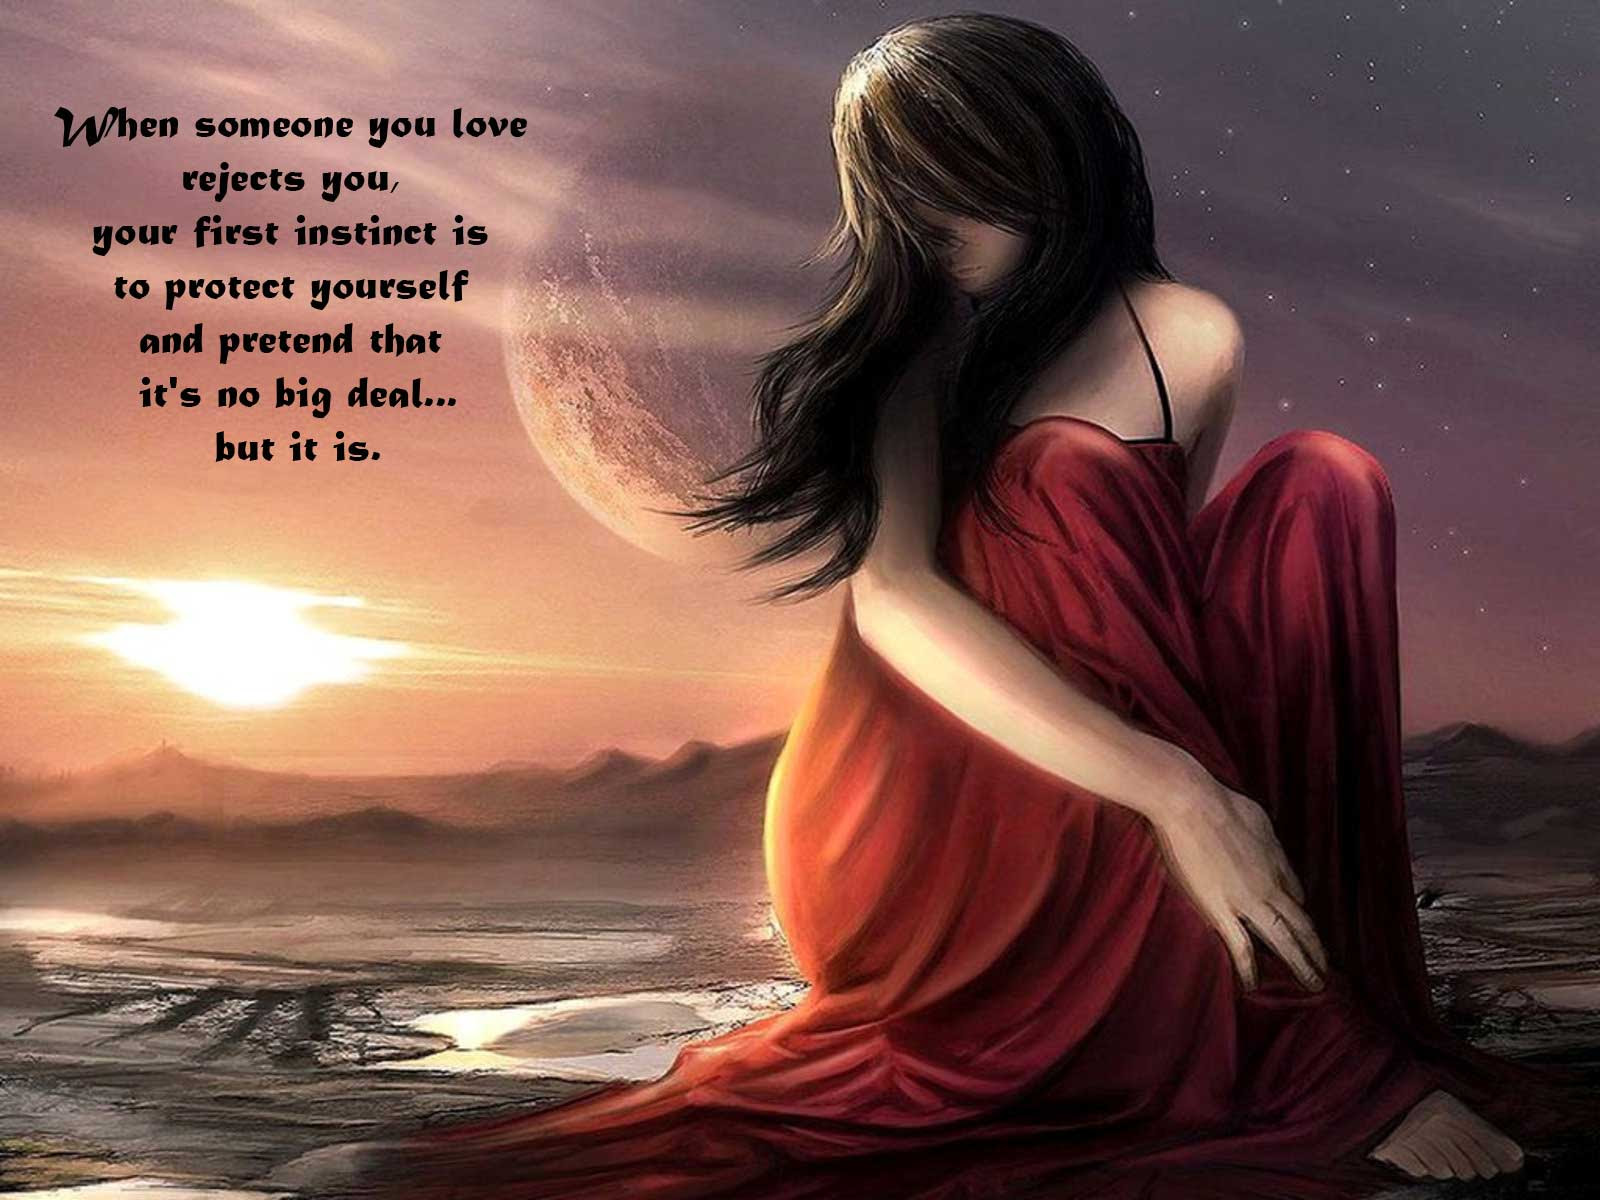 100 Best Sad Love Quotes – The WoW Style